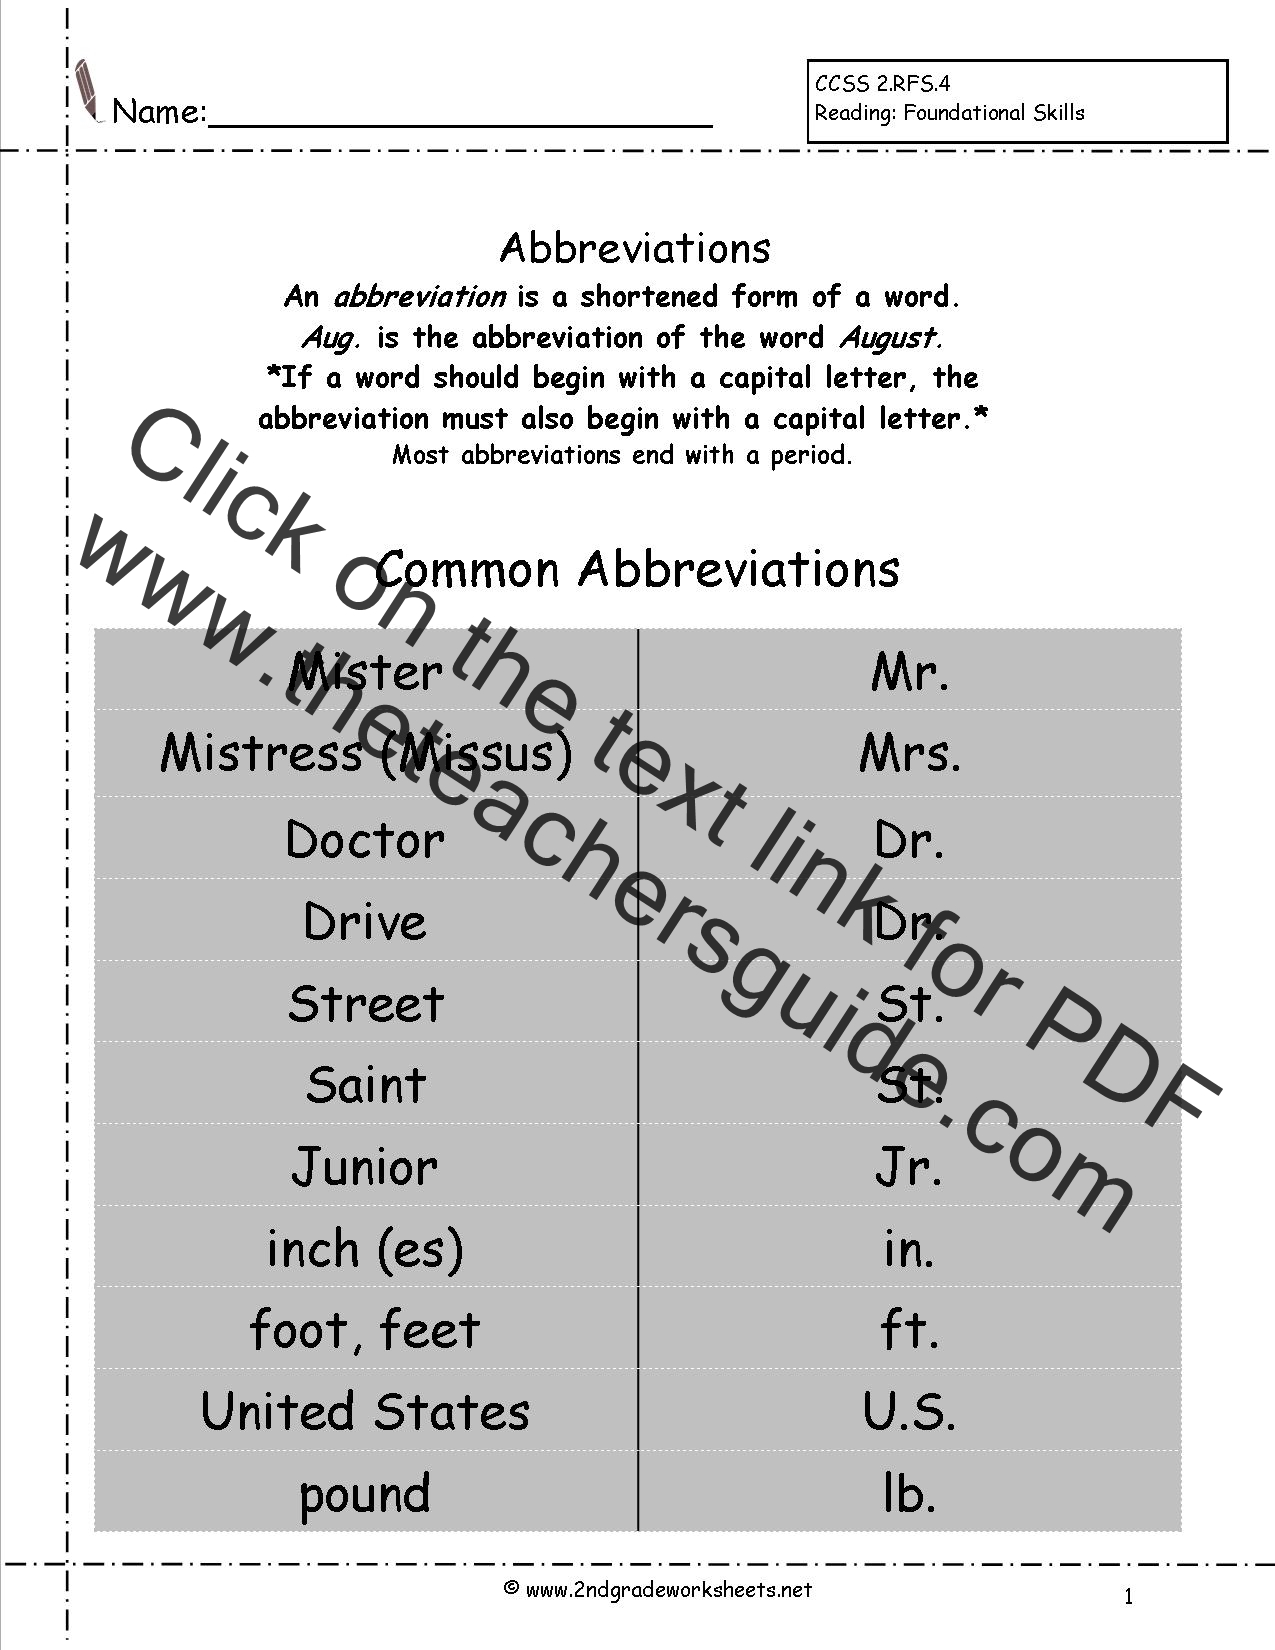 Free LanguageGrammar Worksheets and Printouts – Adjective Worksheets 2nd Grade